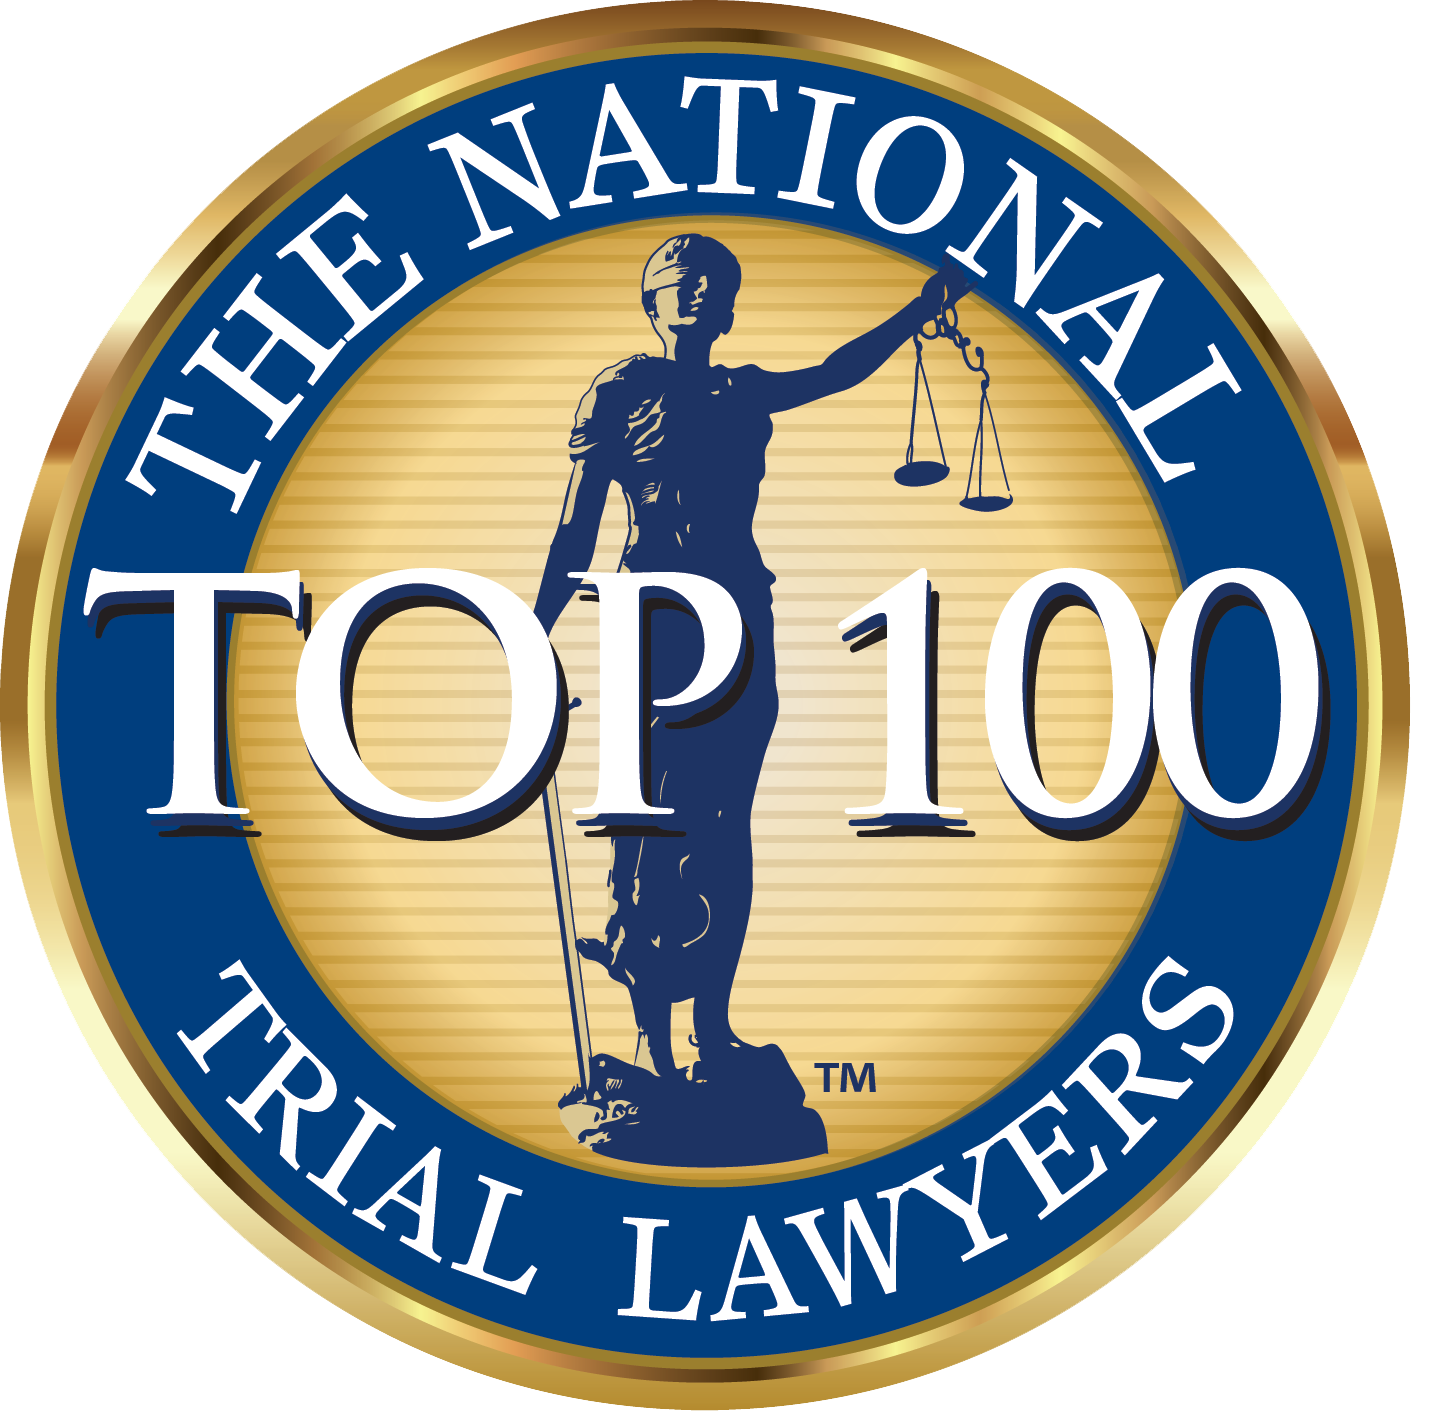 The National Trial Lawyers Trial Top 100 Lawyers logo